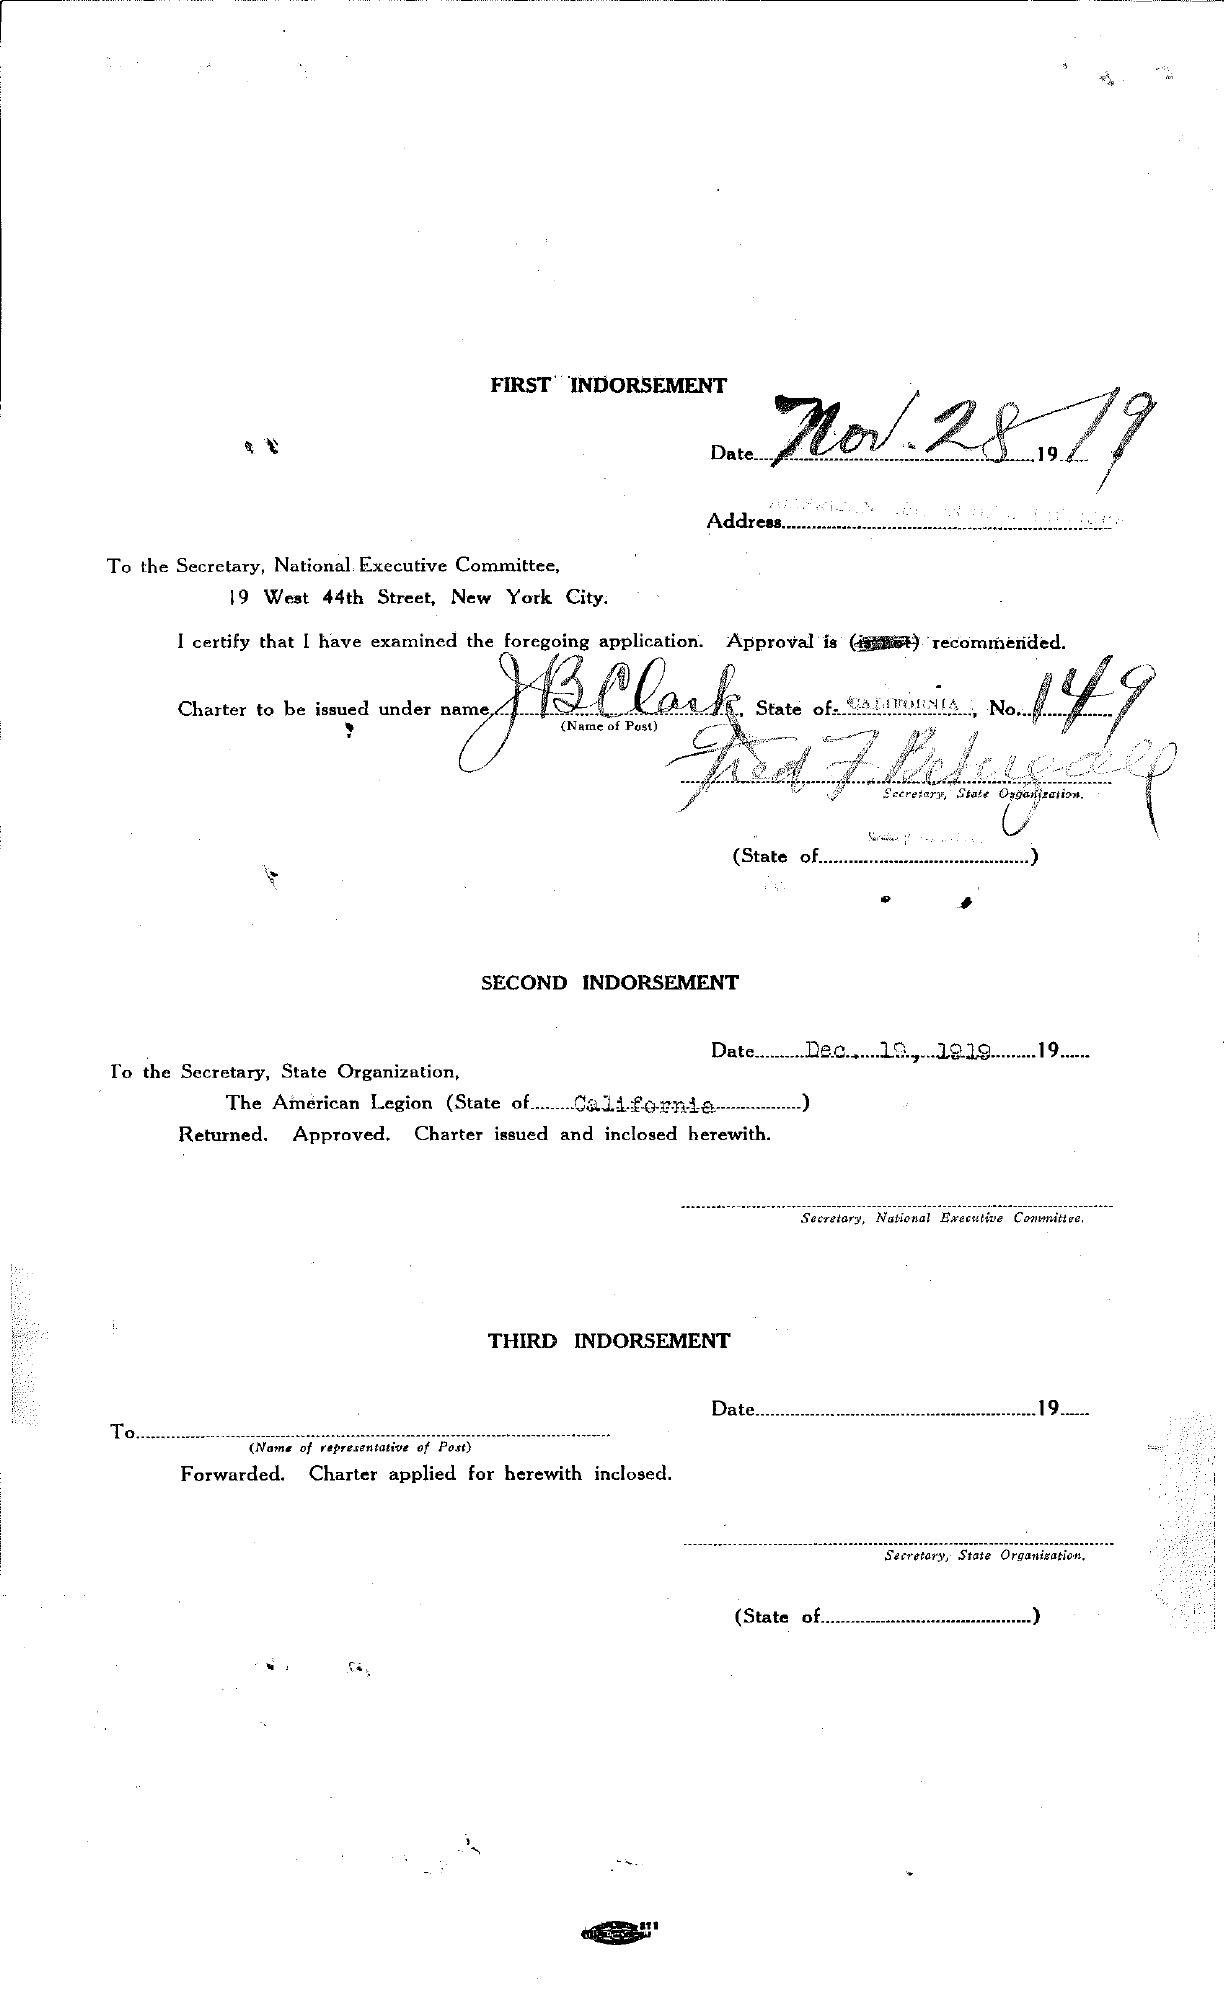 Post 149: Application for Post of American Legion November 26, 1919 - page 2